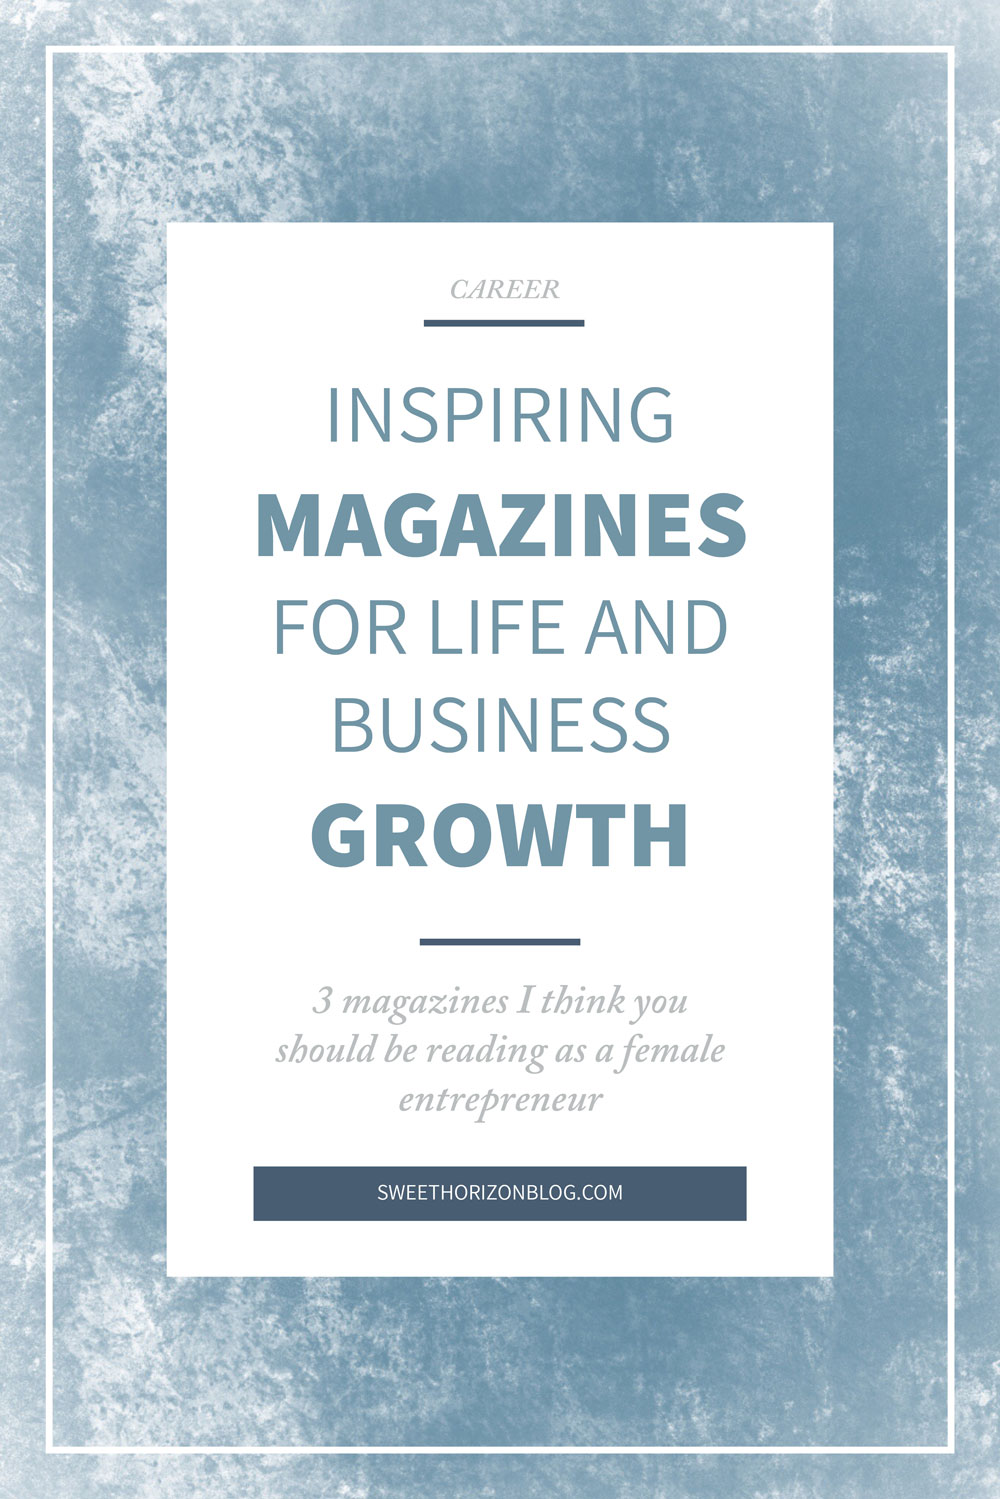 Inspiring Magazines for Life and Business Growth from www.sweethorizonblog.com